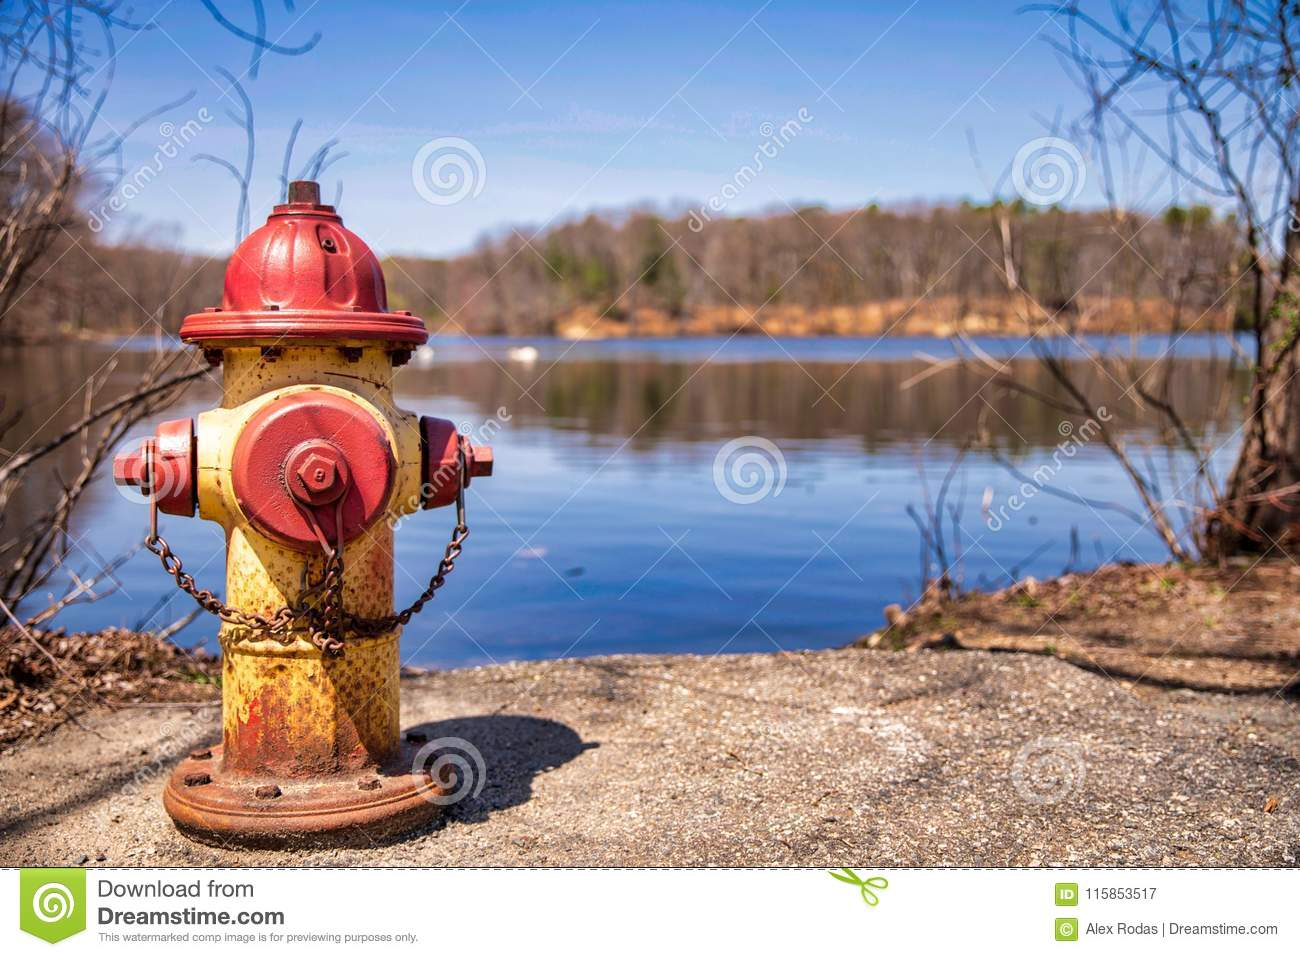 Alter Hydrant nah an Wassersee